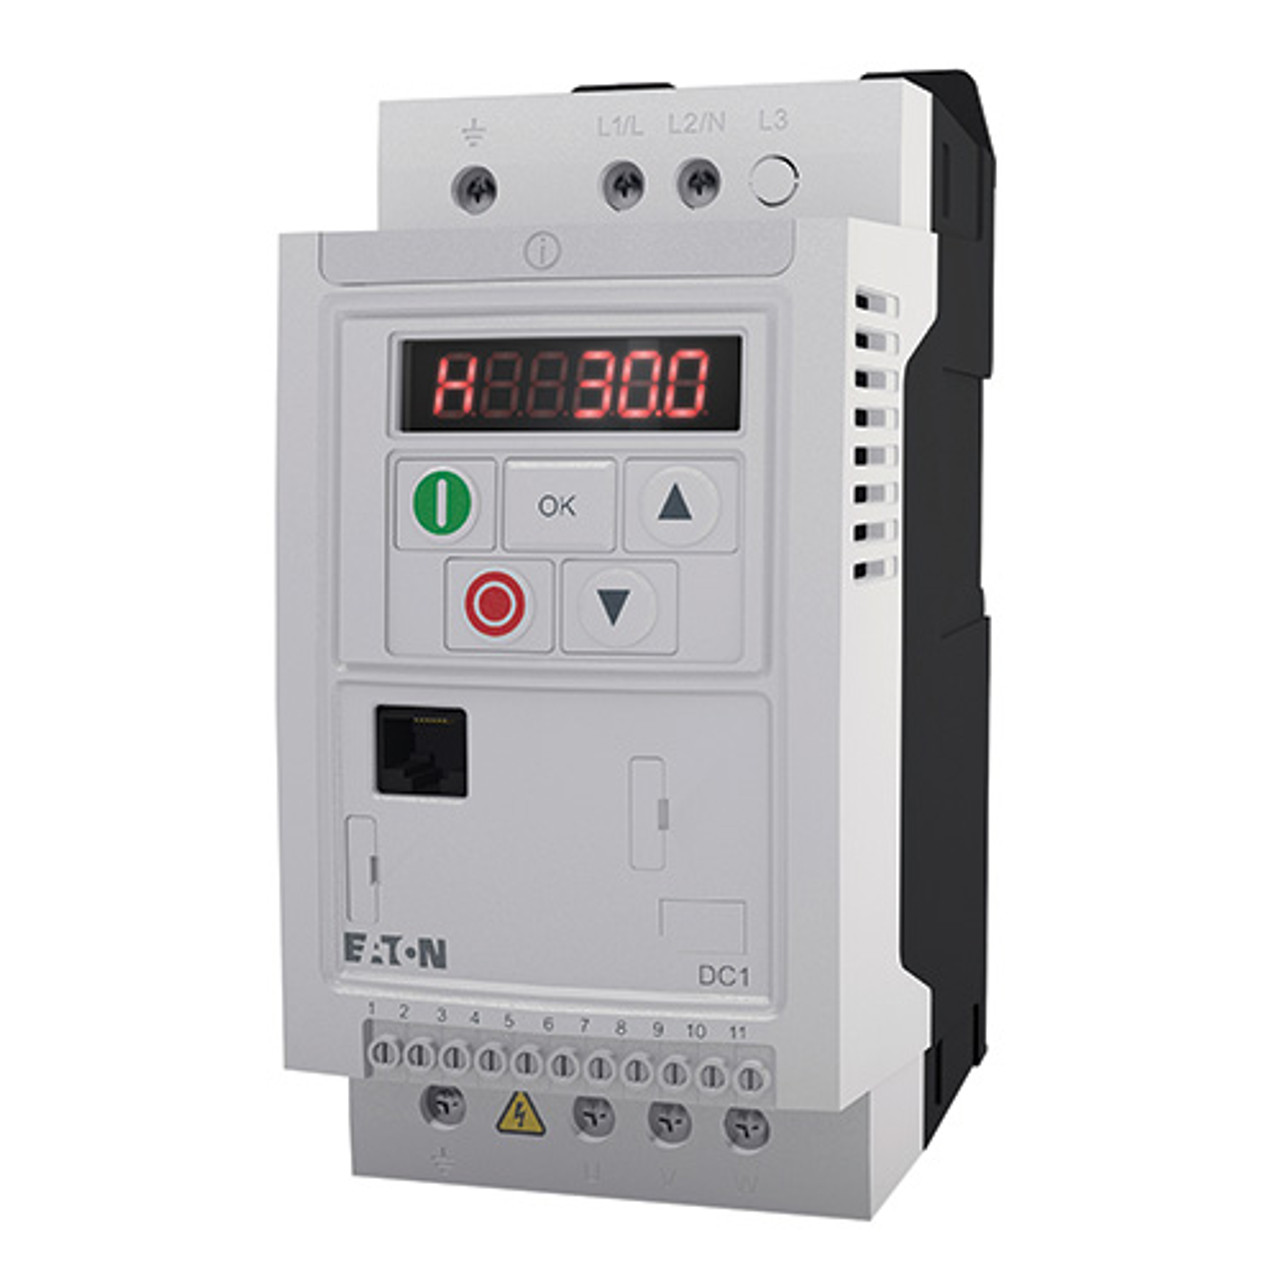 5HP 230V 3PH In / 230 3PH Out, IP20 DC1 VFD